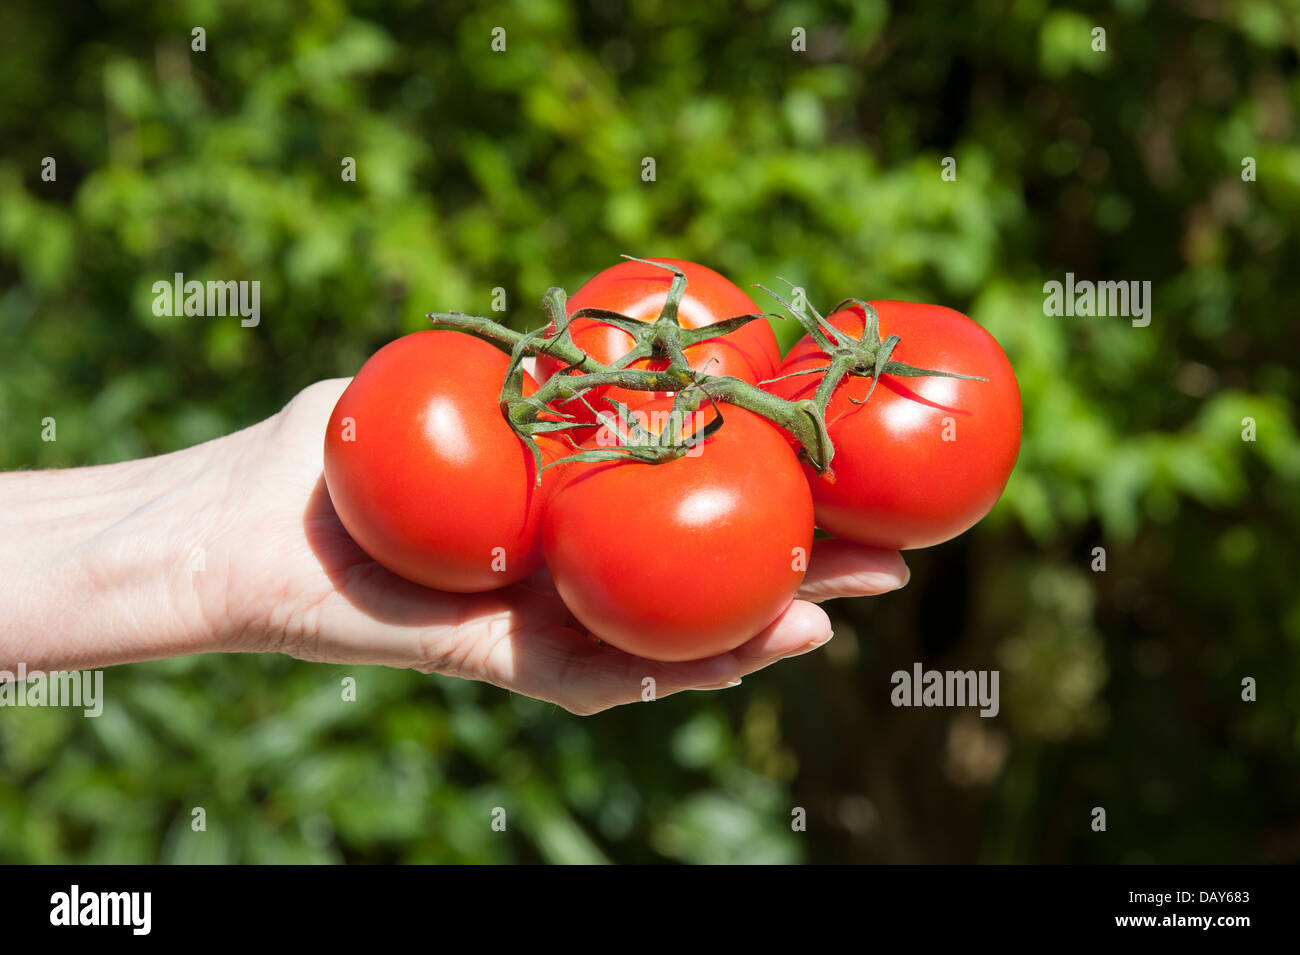 Freshly picked ripe tomatoes in a woman's hand - Stock Image